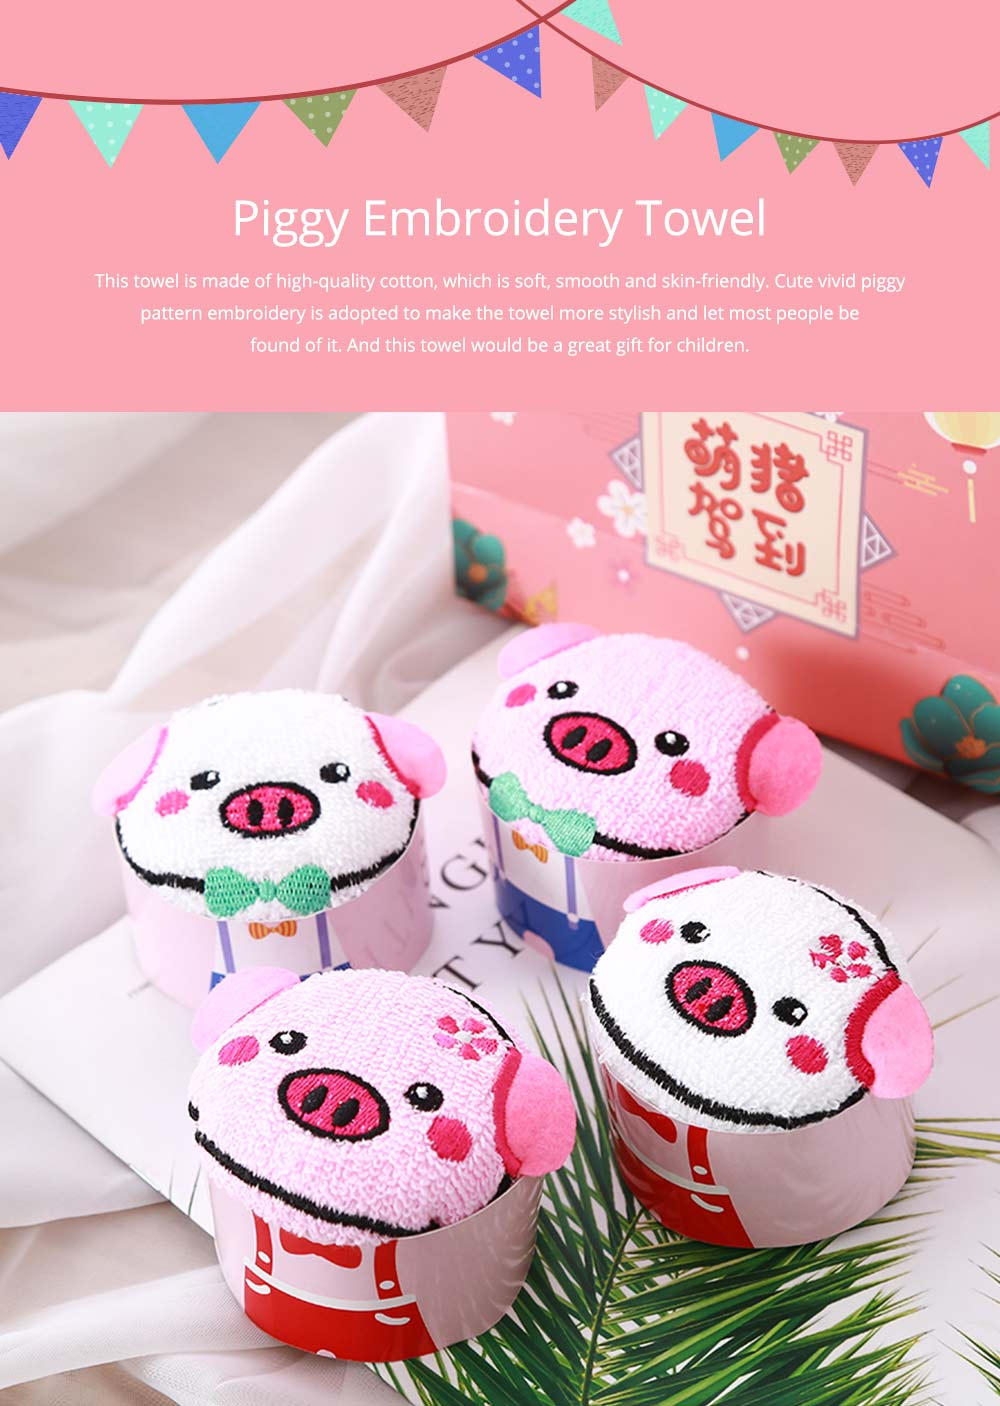 Cute Delicate Pig Pattern Embroidery Little Towel for Children, Creative Lively Piggy Towel Gift Box for Lovers Girls Friends 0